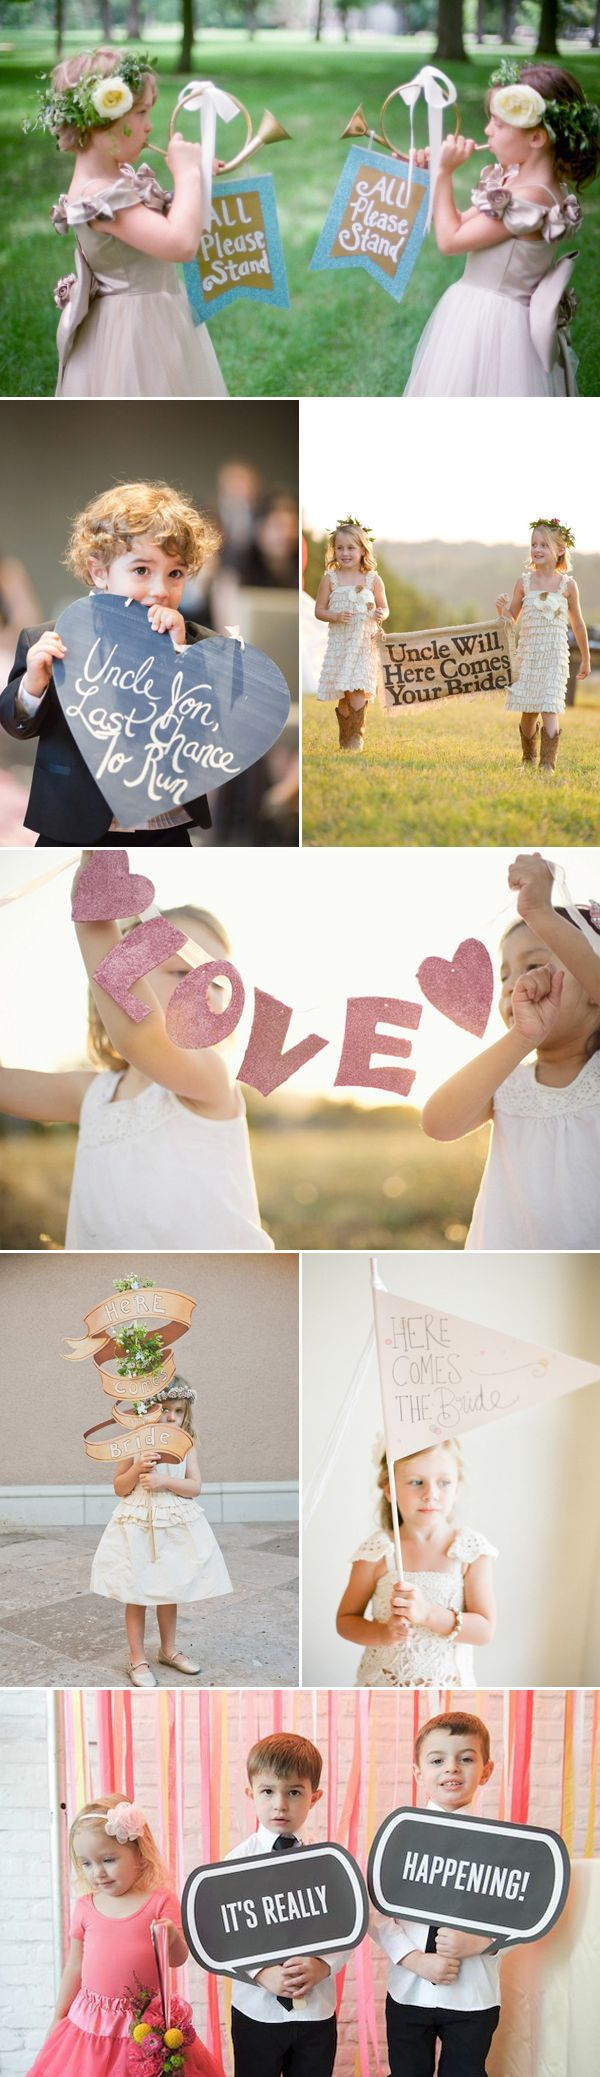 Spell Out Your Love! 46 Fun Wedding Signs - For the kids